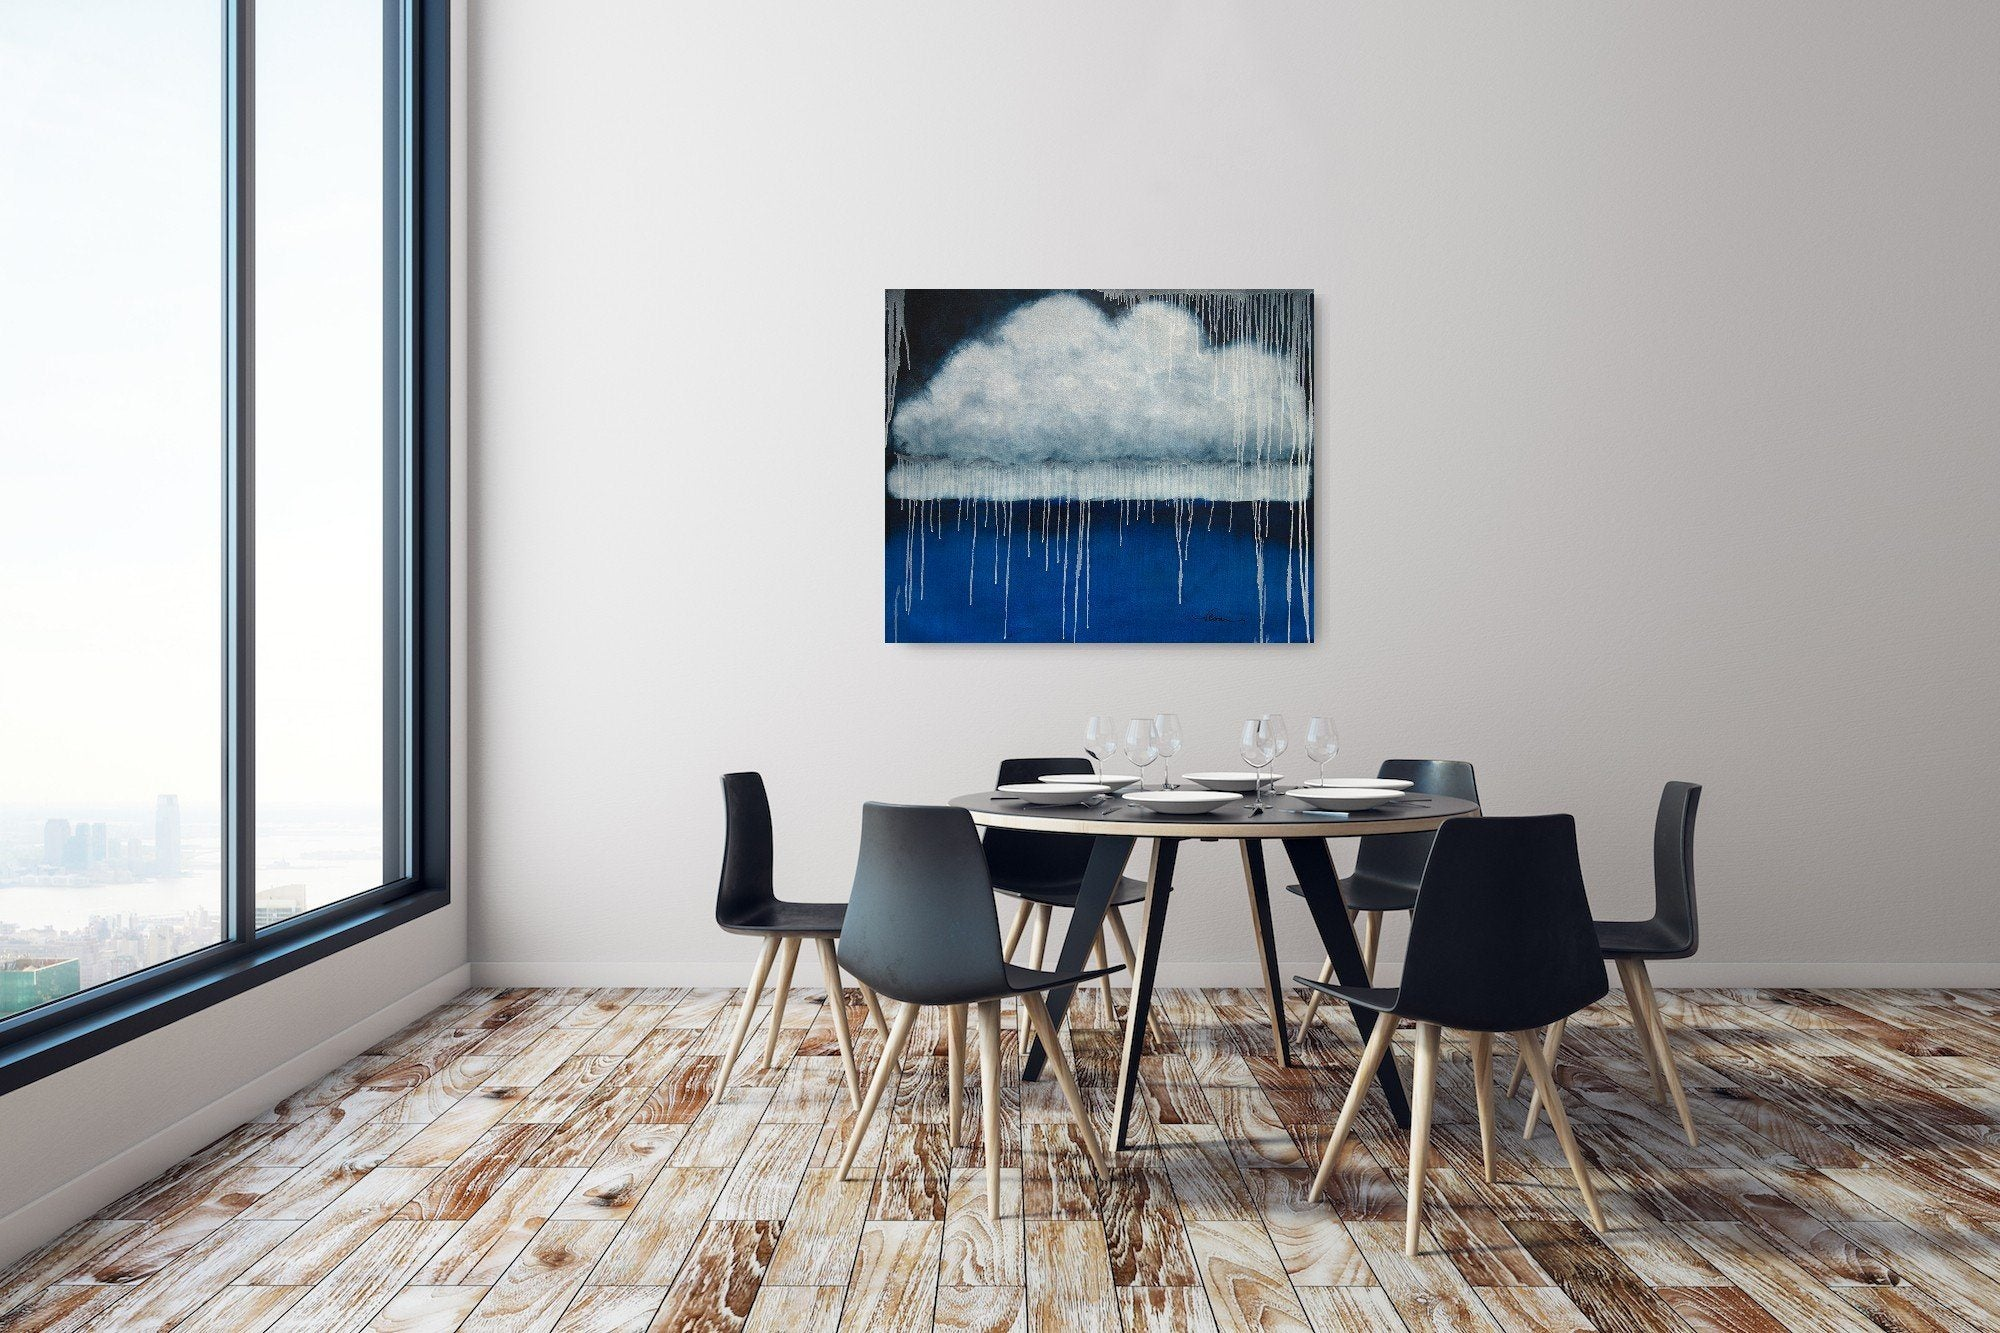 "Cloud, Sea, Rain, Oil Painting on Canvas (30""x36"") - Norlynne Coar Fine Art"